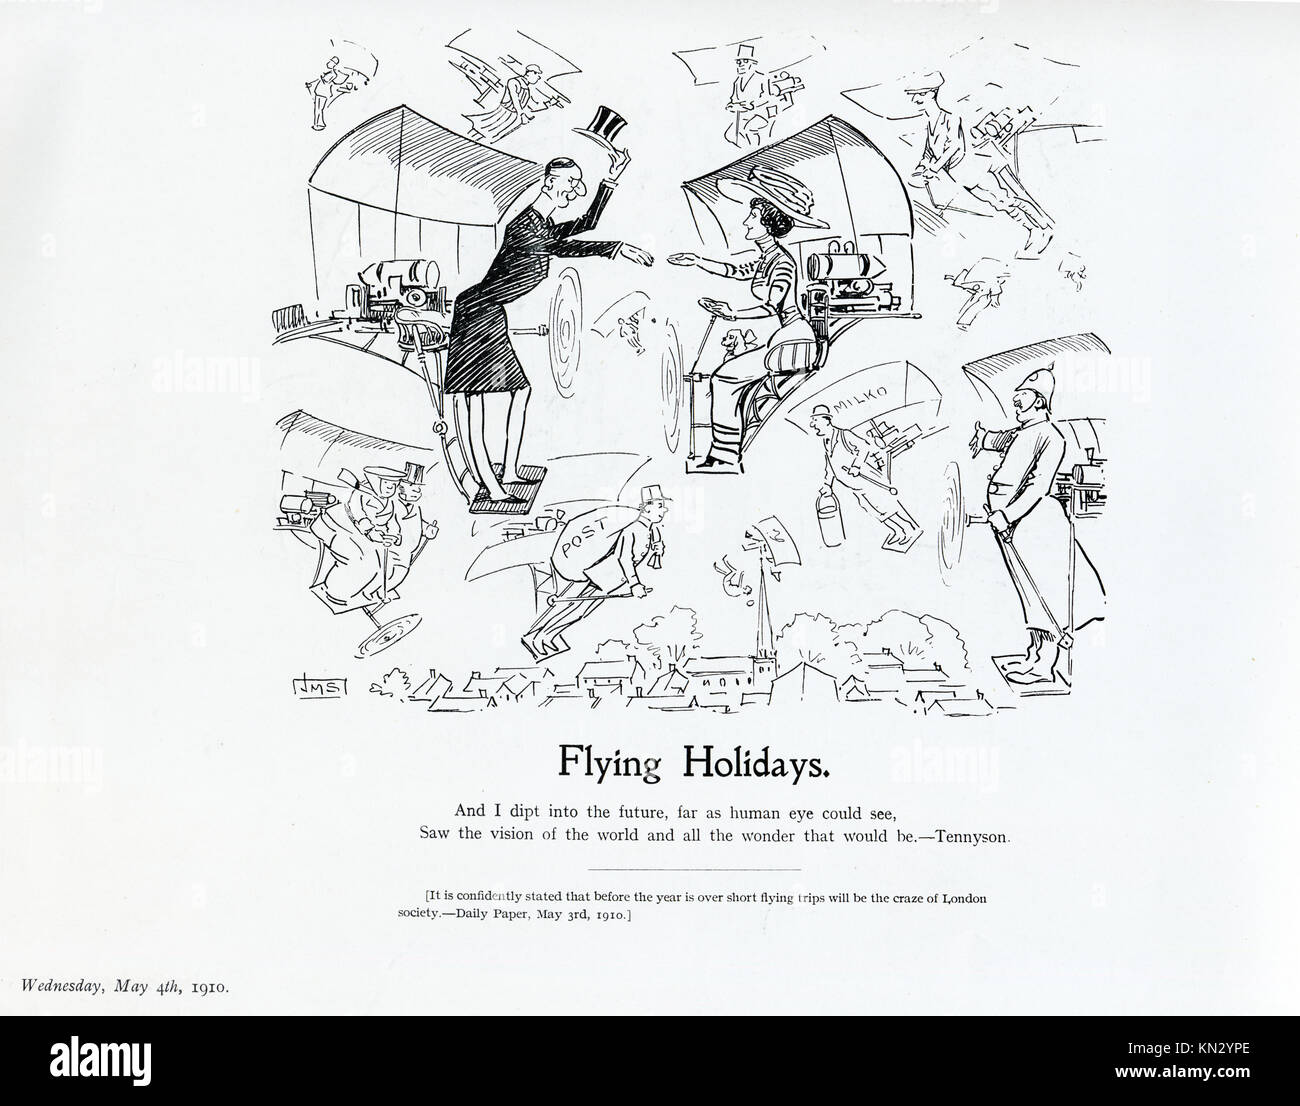 Flying Holidays, 1910 cartoon by JM Staniforth on the prediction that within the year short flying trips would be - Stock Image